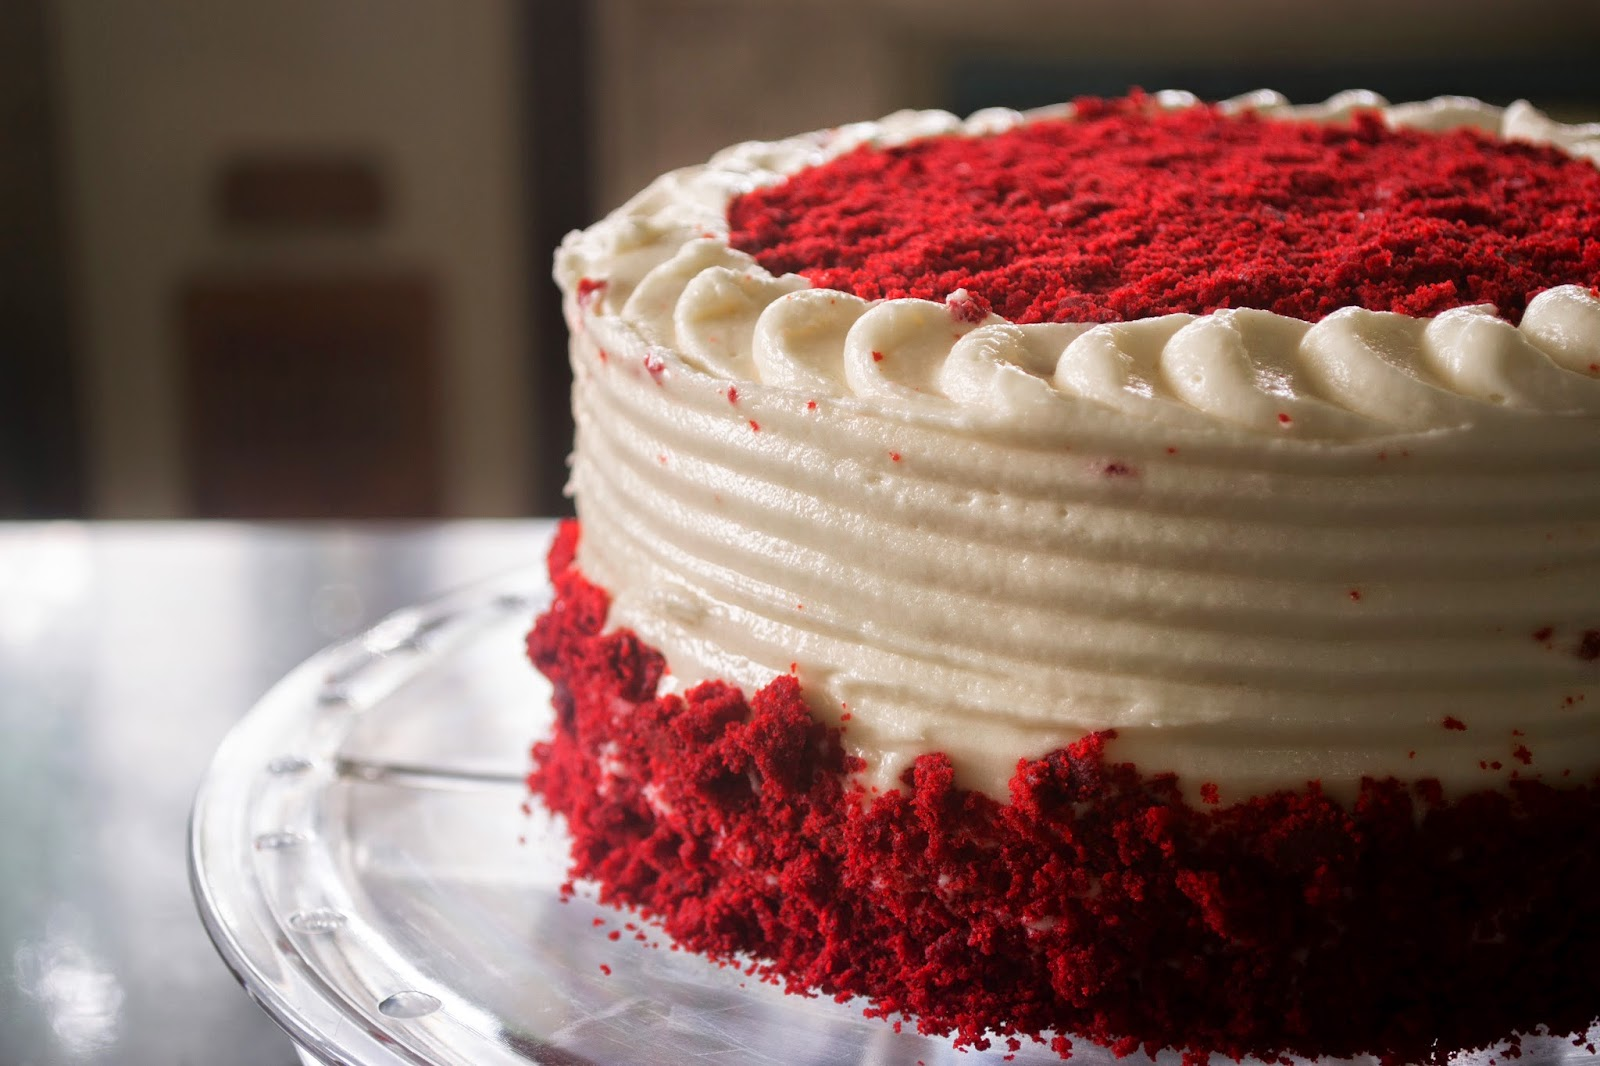 How To Make Red Velvet Cake Frosting Without Cream Cheese